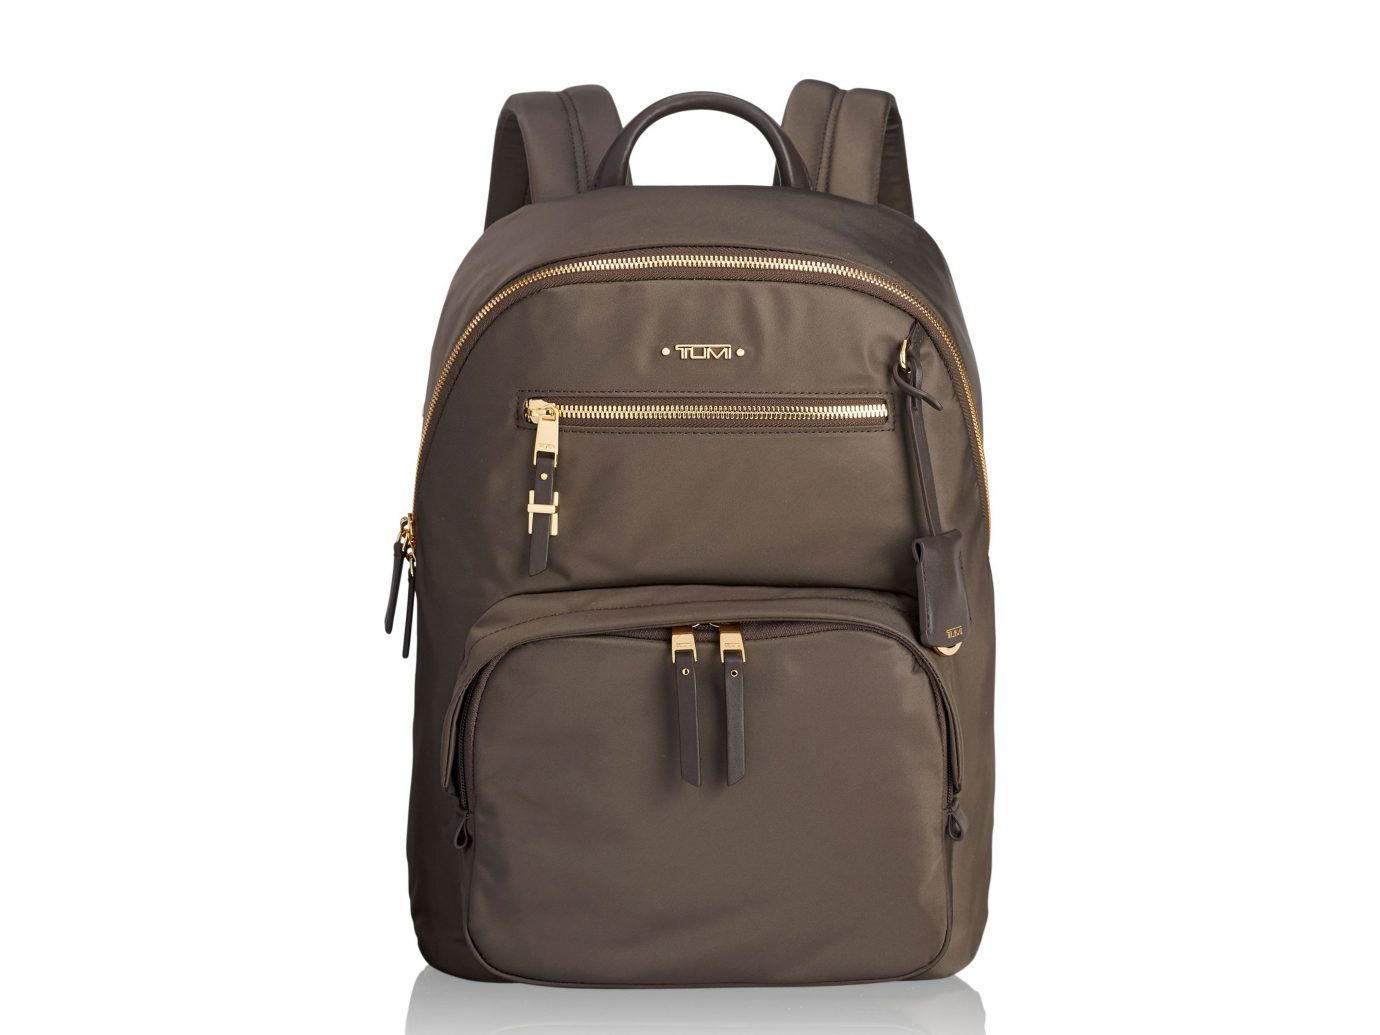 Tumi Voyageur Hagen Nylon Backpack